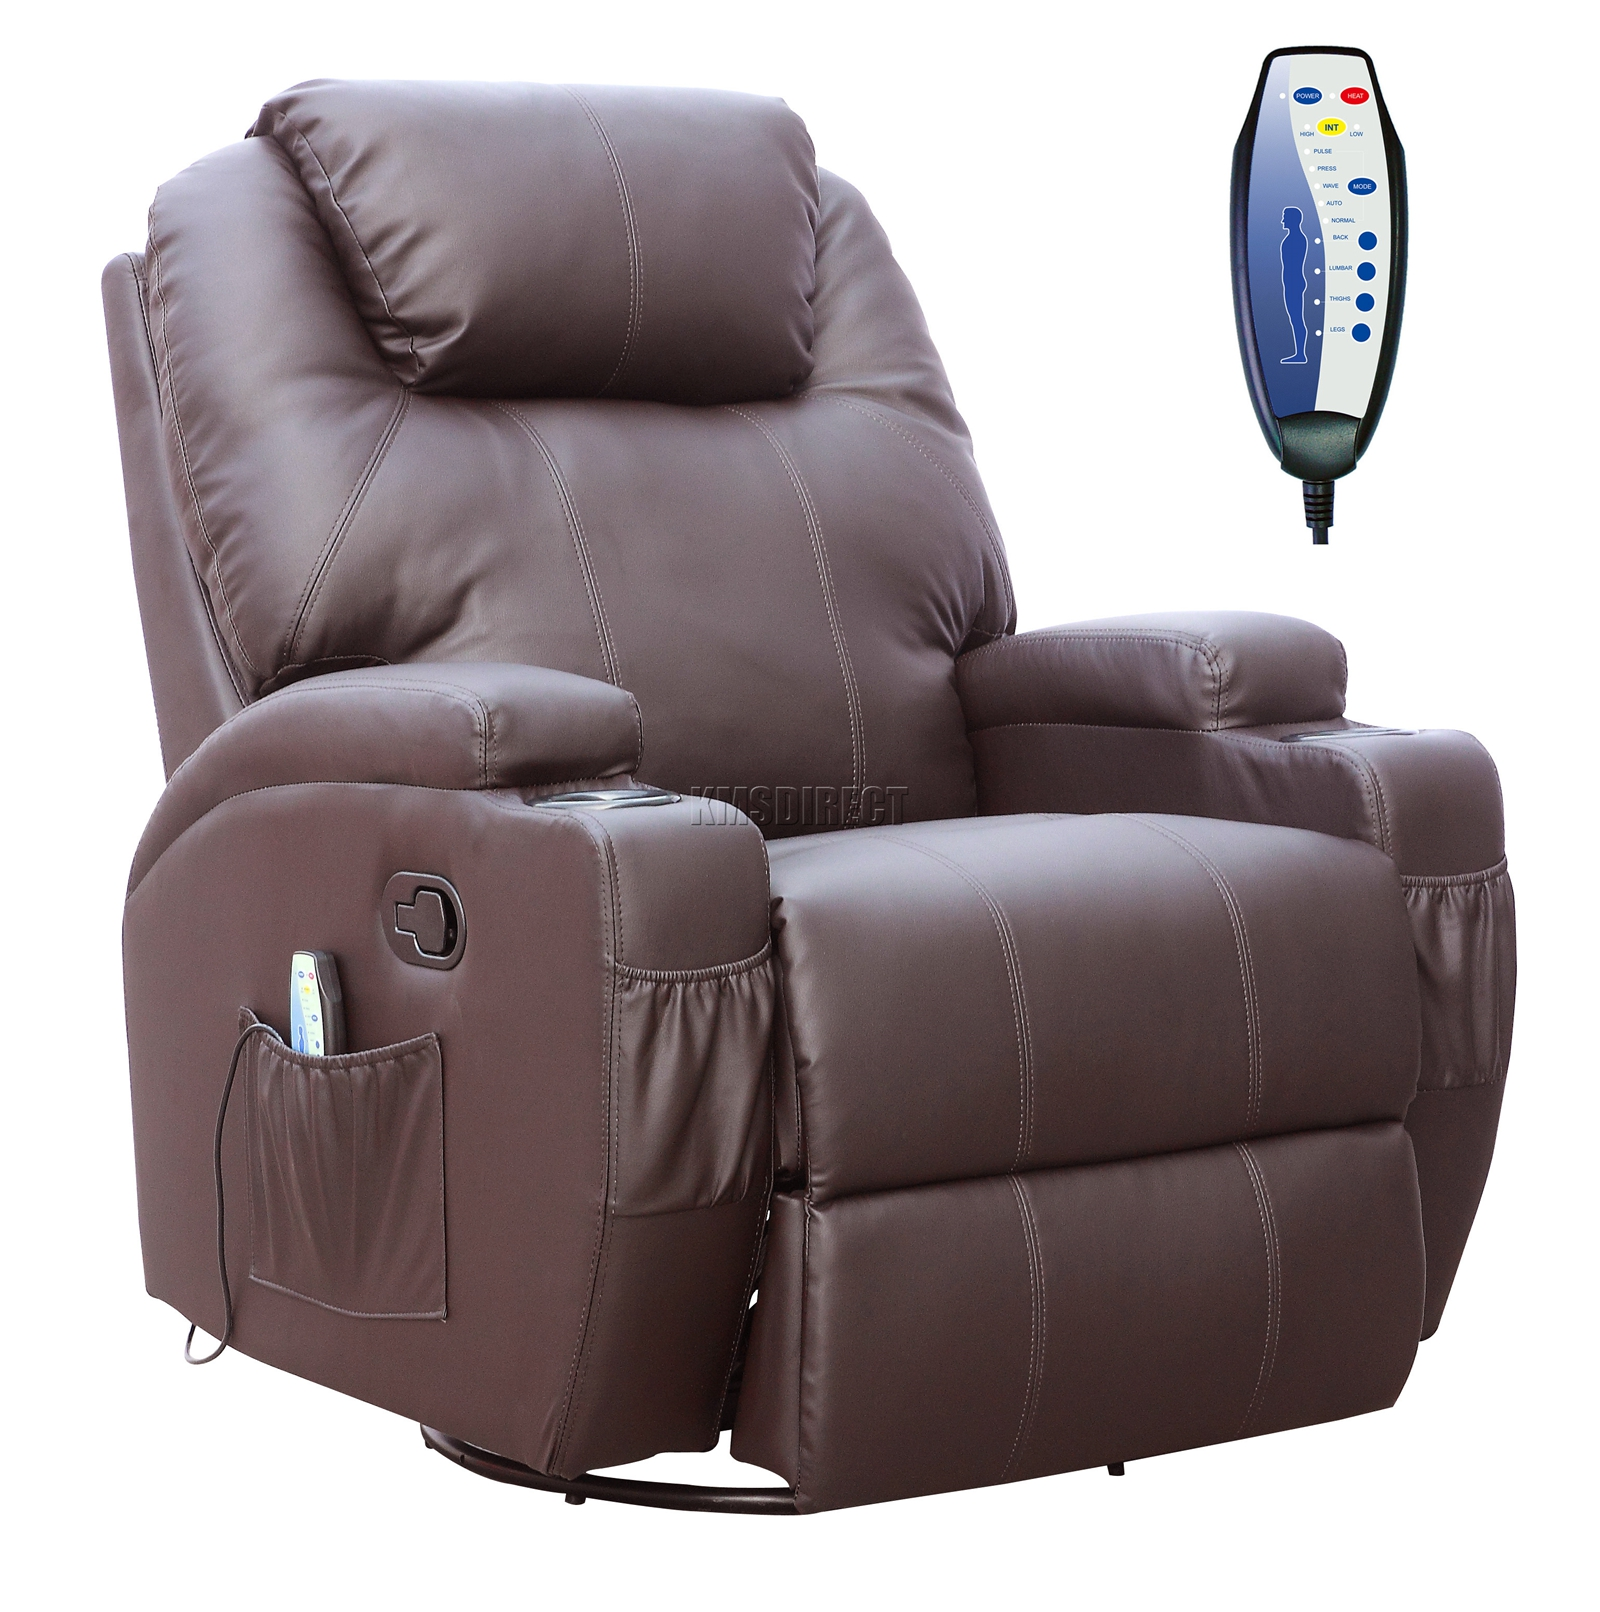 Foxhunter Bonded Leather Sofa Mage Recliner Chair Swivel